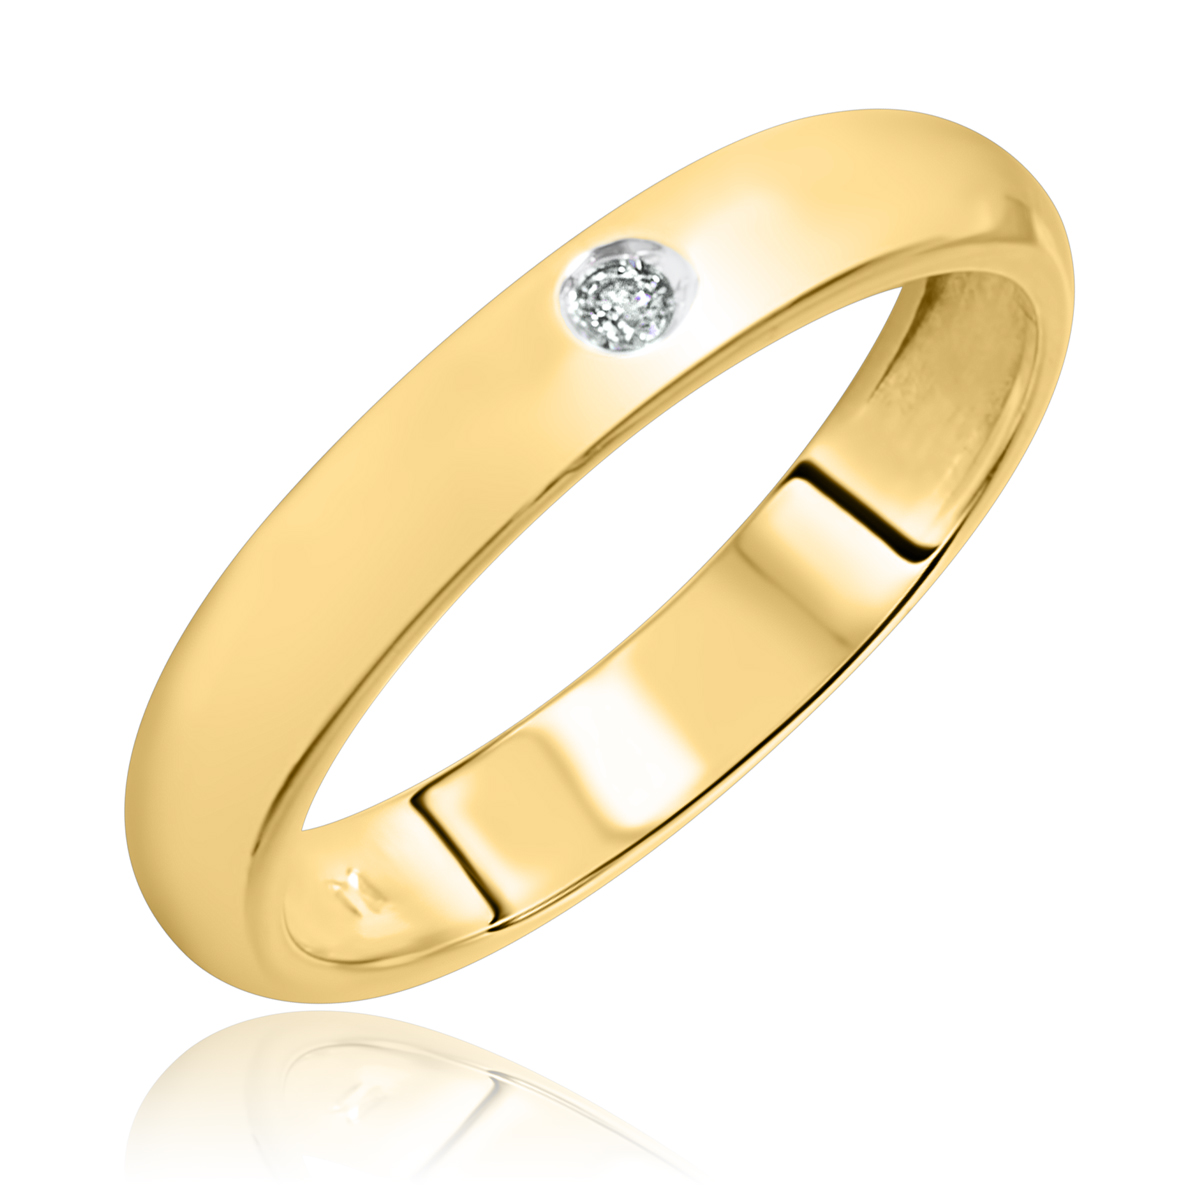 1/20 CT. T.W. Round Cut Diamond Men's Wedding Band 14K Yellow Gold- Size 8